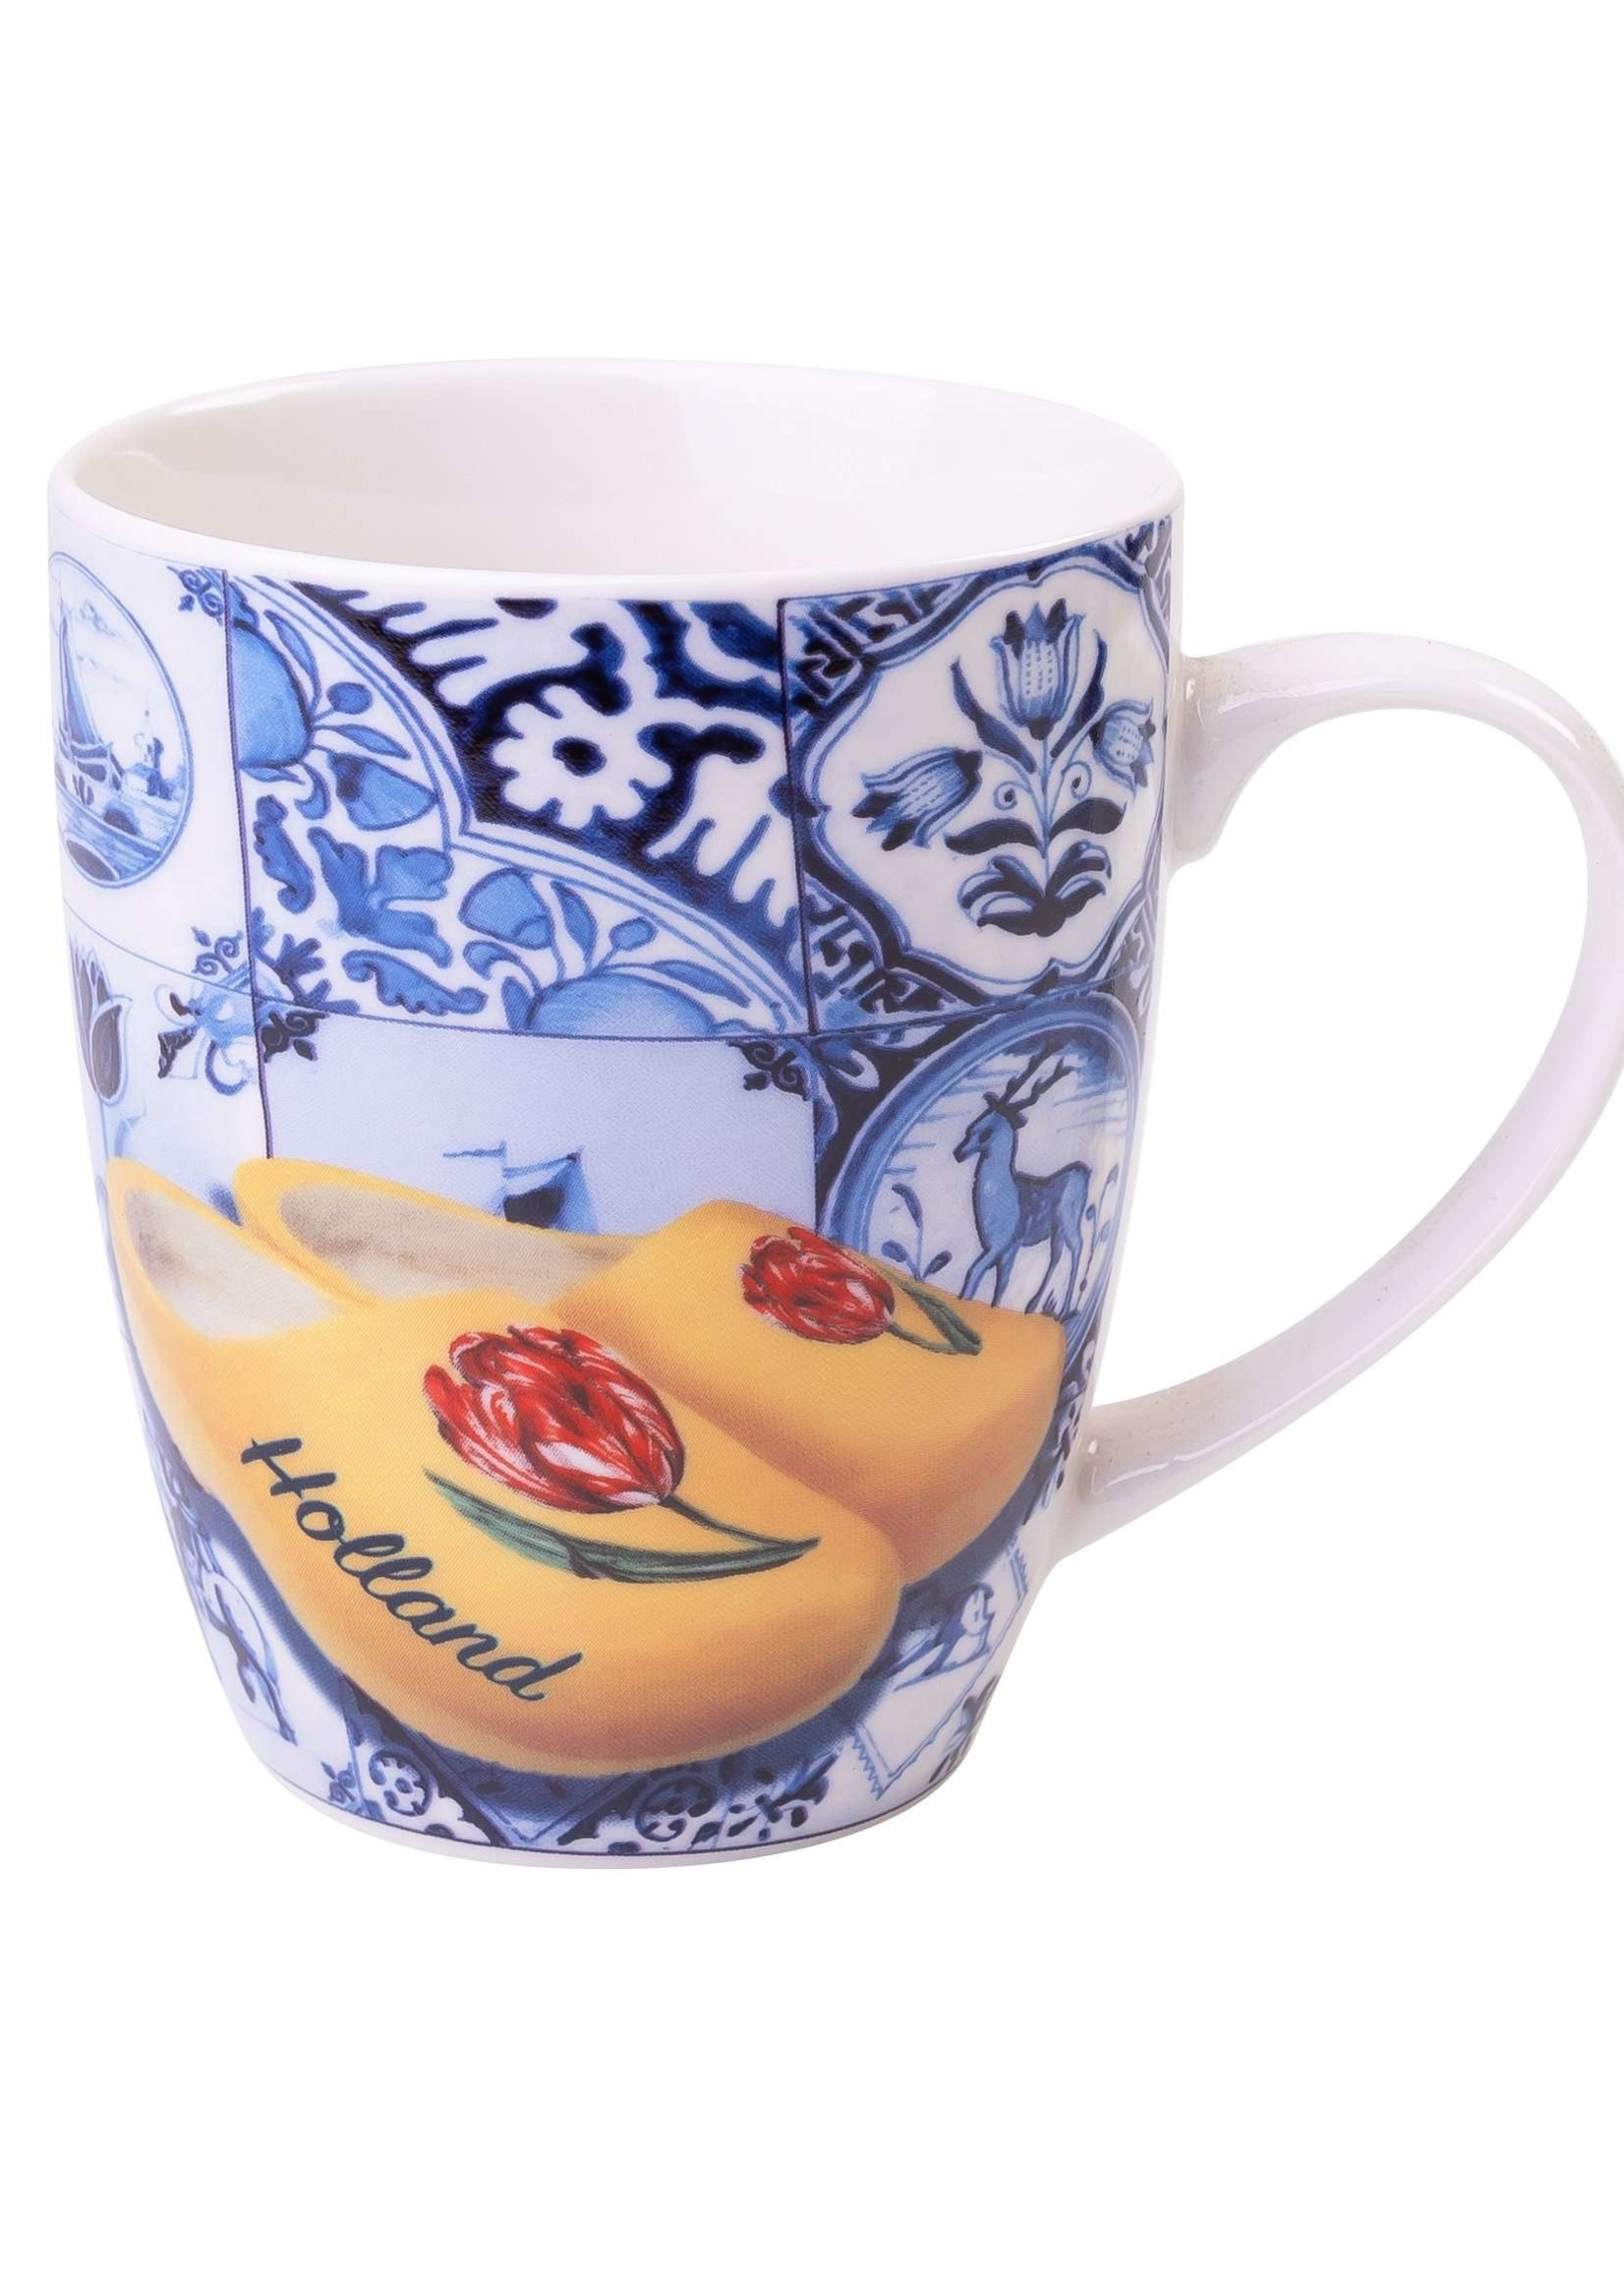 Heinen Delfts Blauw Delft Blue Mug with Tiles and Wooden Shoes, 300 ml / 10,1 oz